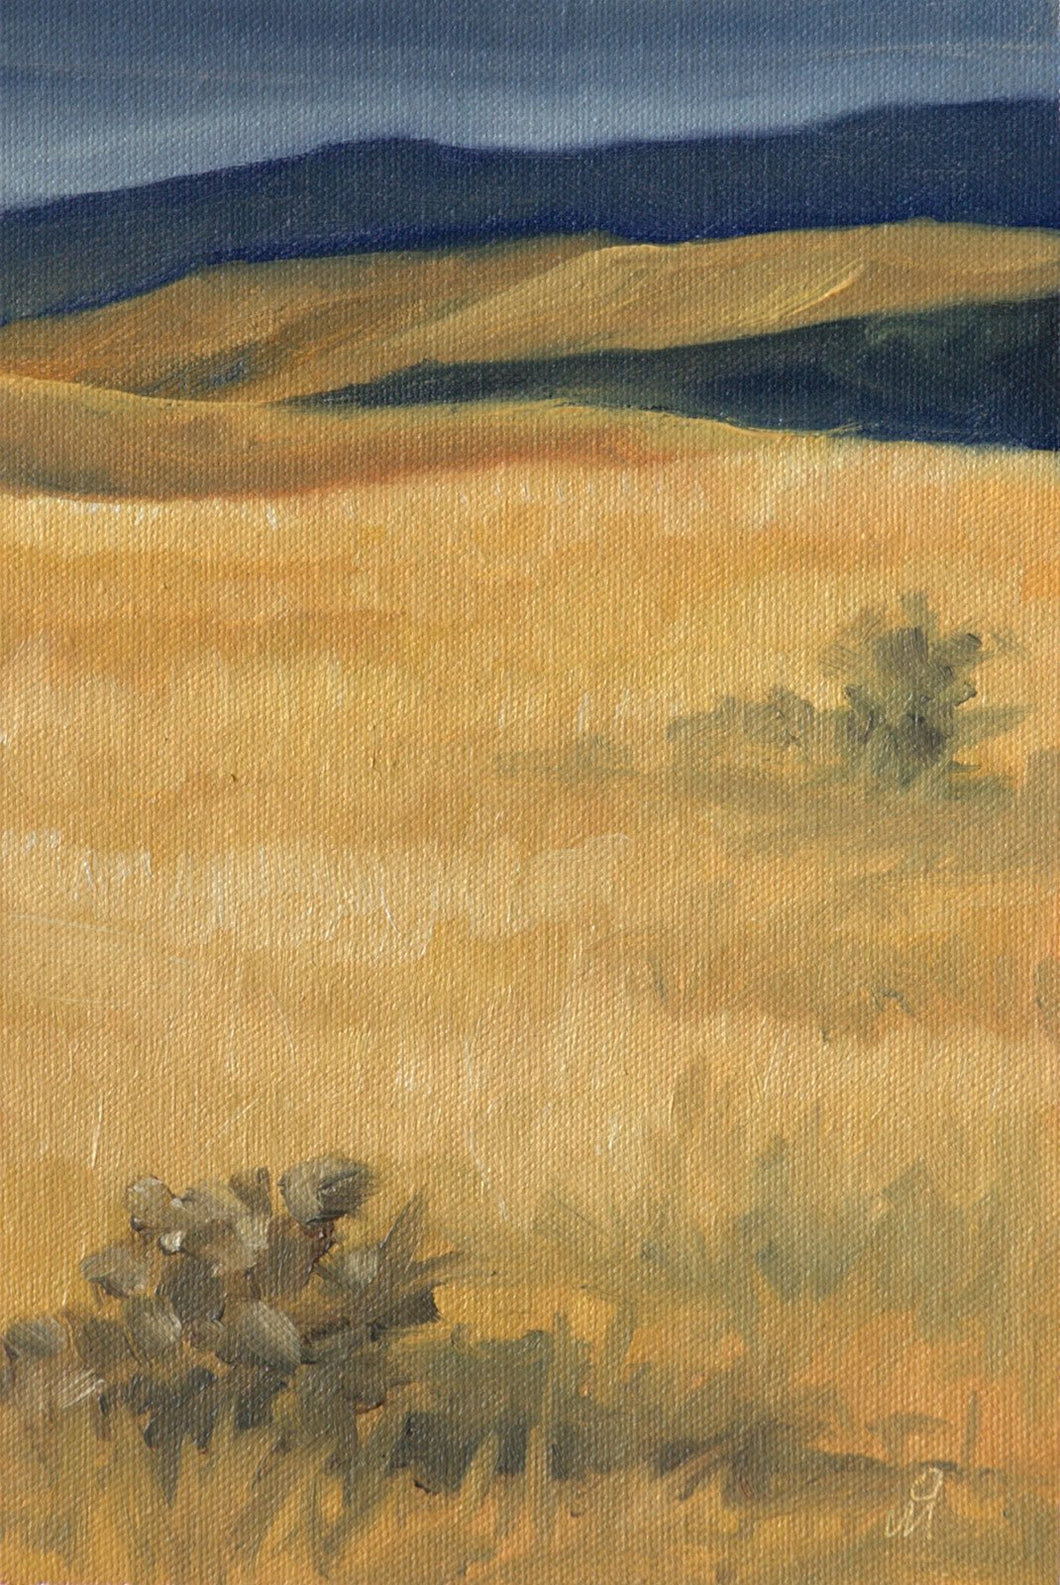 Landscape painting showing dried grass and a few shrubs in the major portion of the painting with a hint of grey violet distant mountain and pale sky towards the top.